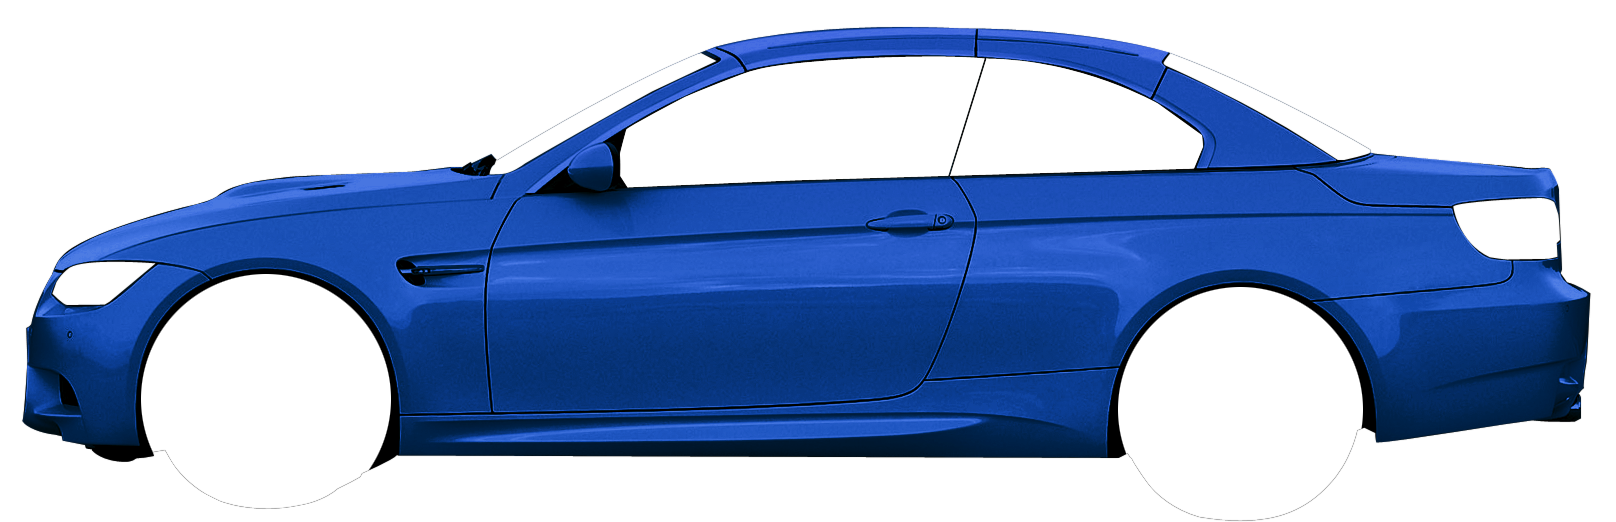 Car window png. Tint visualizer